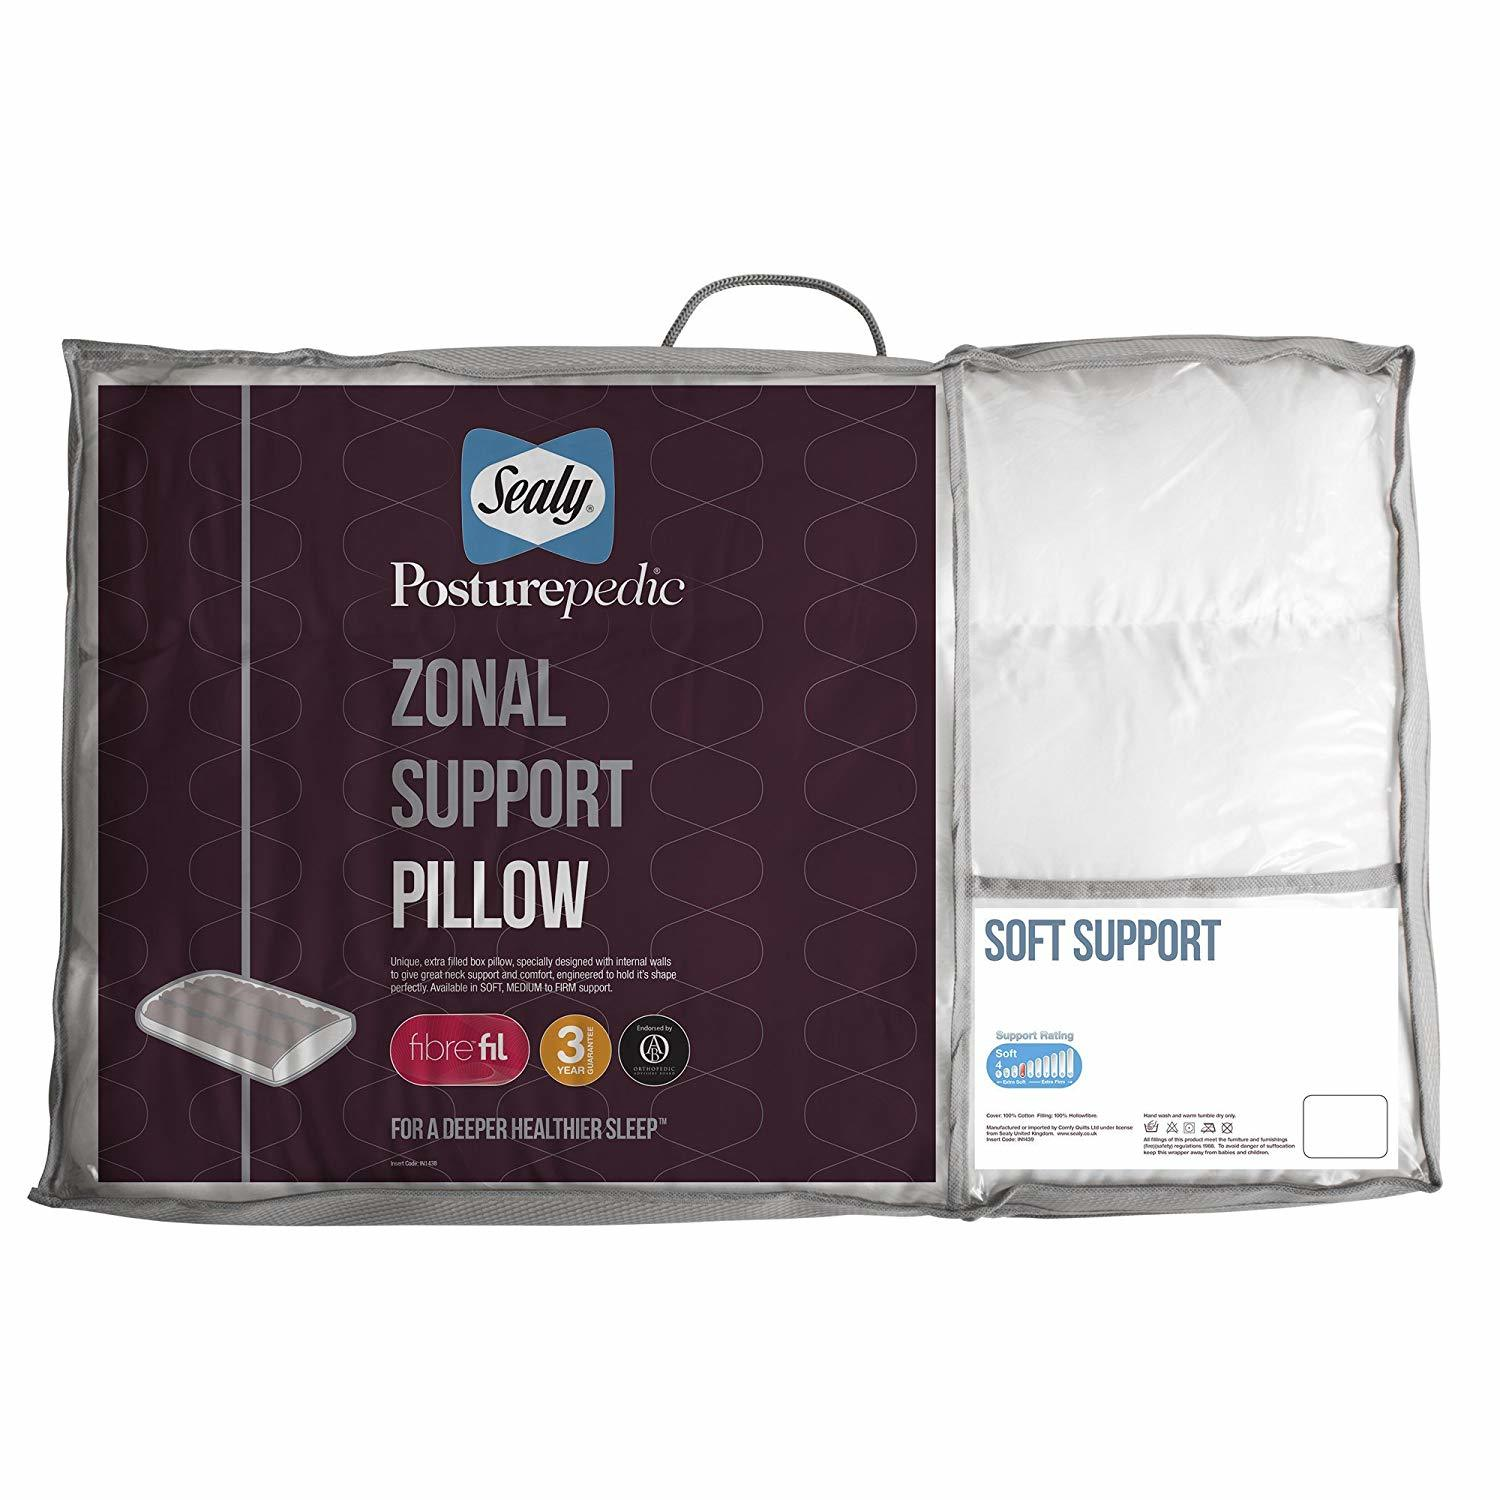 Sealy Posturepedic Zonal Support Pillow Soft